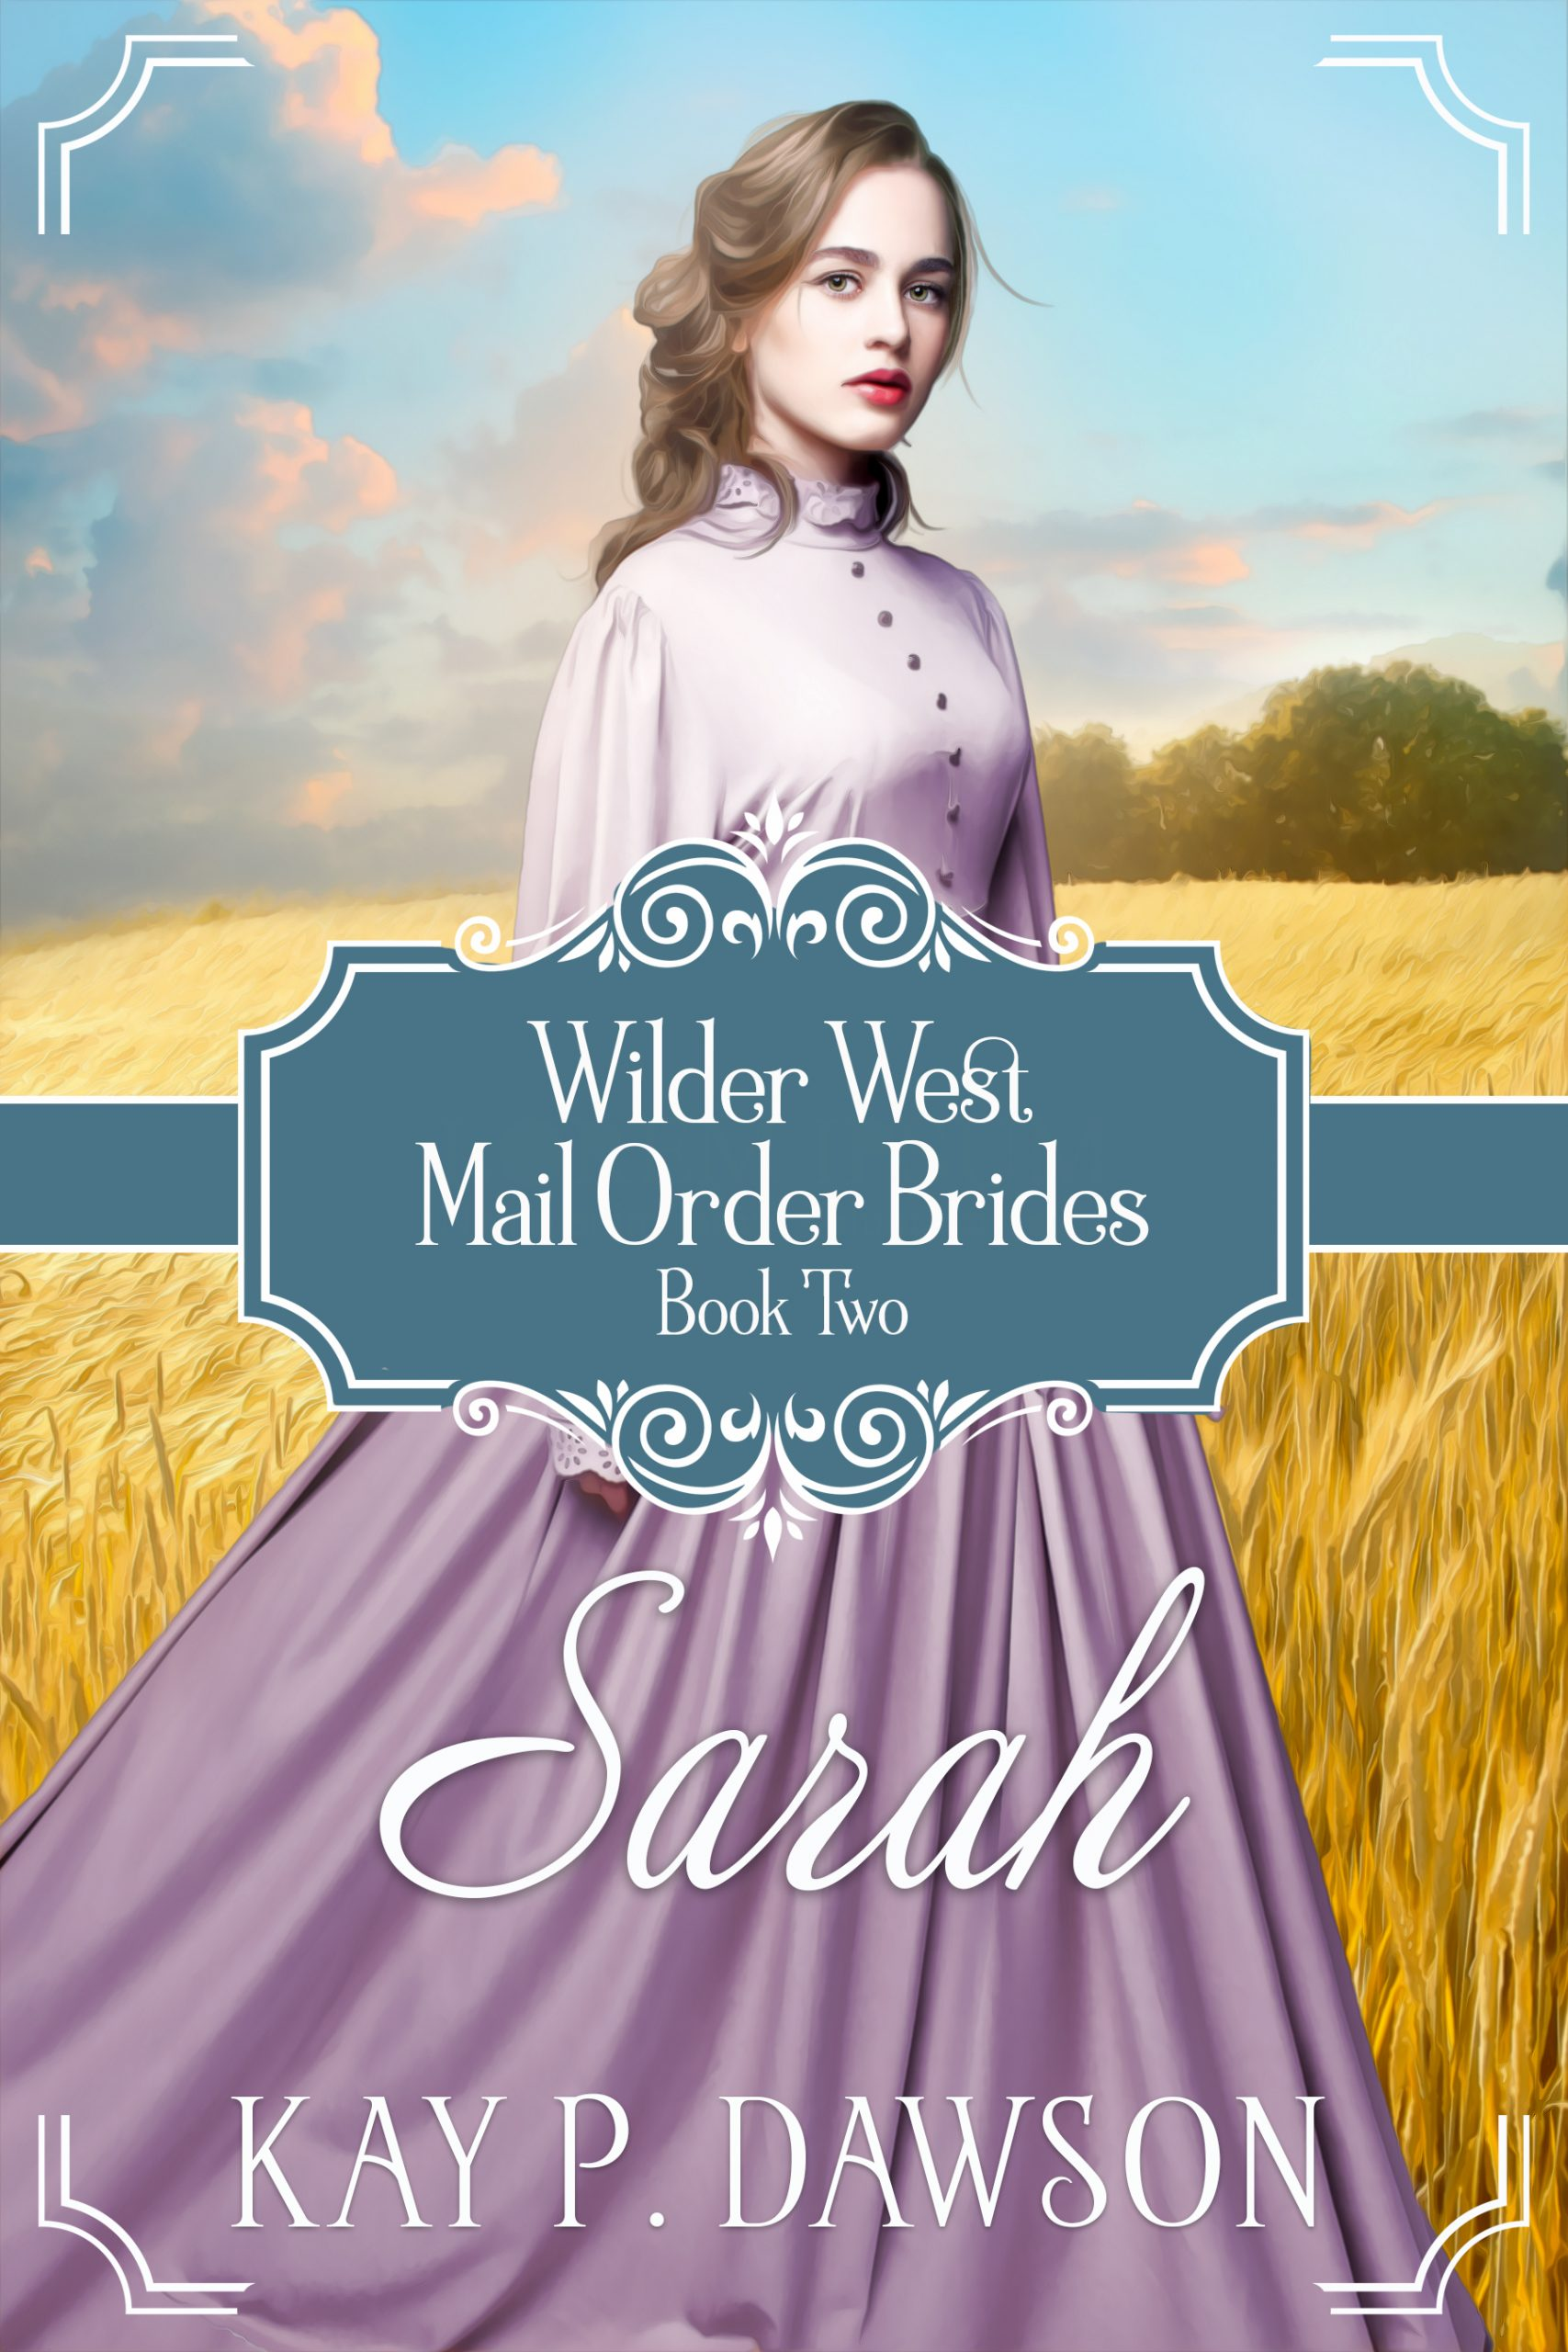 Sarah - Wilder West Mail Order Brides Series